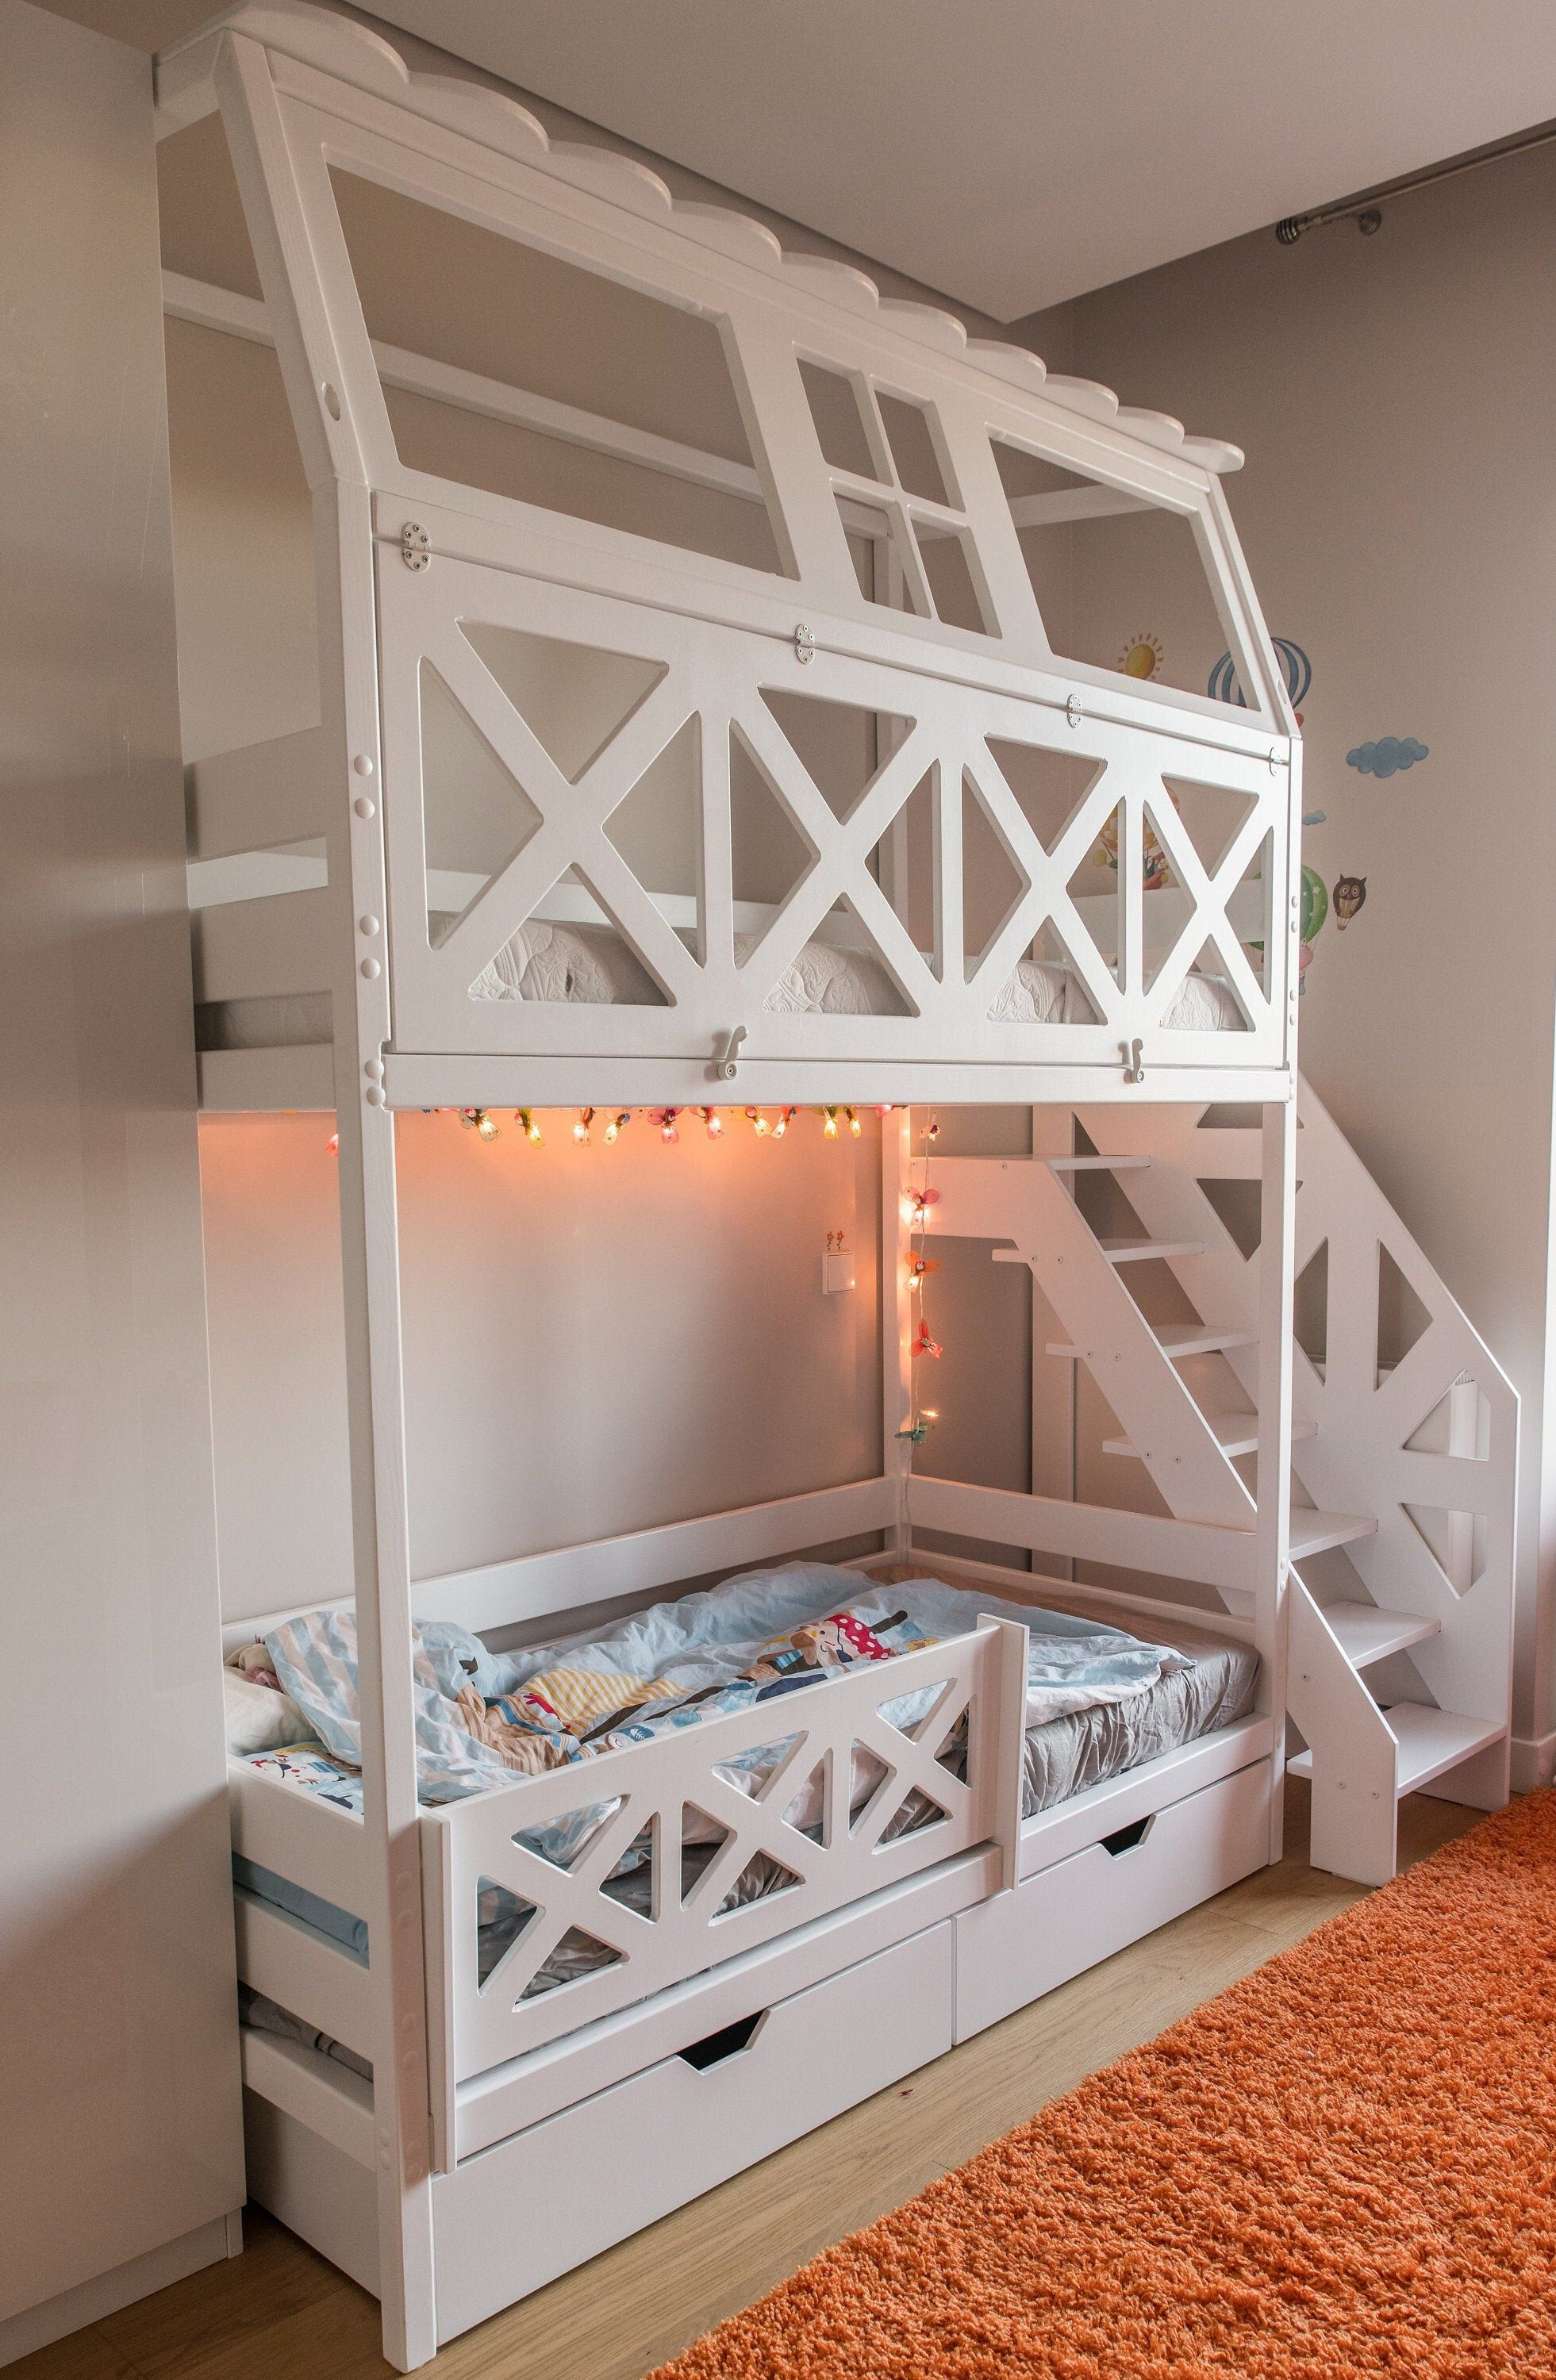 Bunk Bed For Kids Loft Bed Playhouse Bunk Bed Kids Etsy Kid Beds Loft Bed Bunk Beds